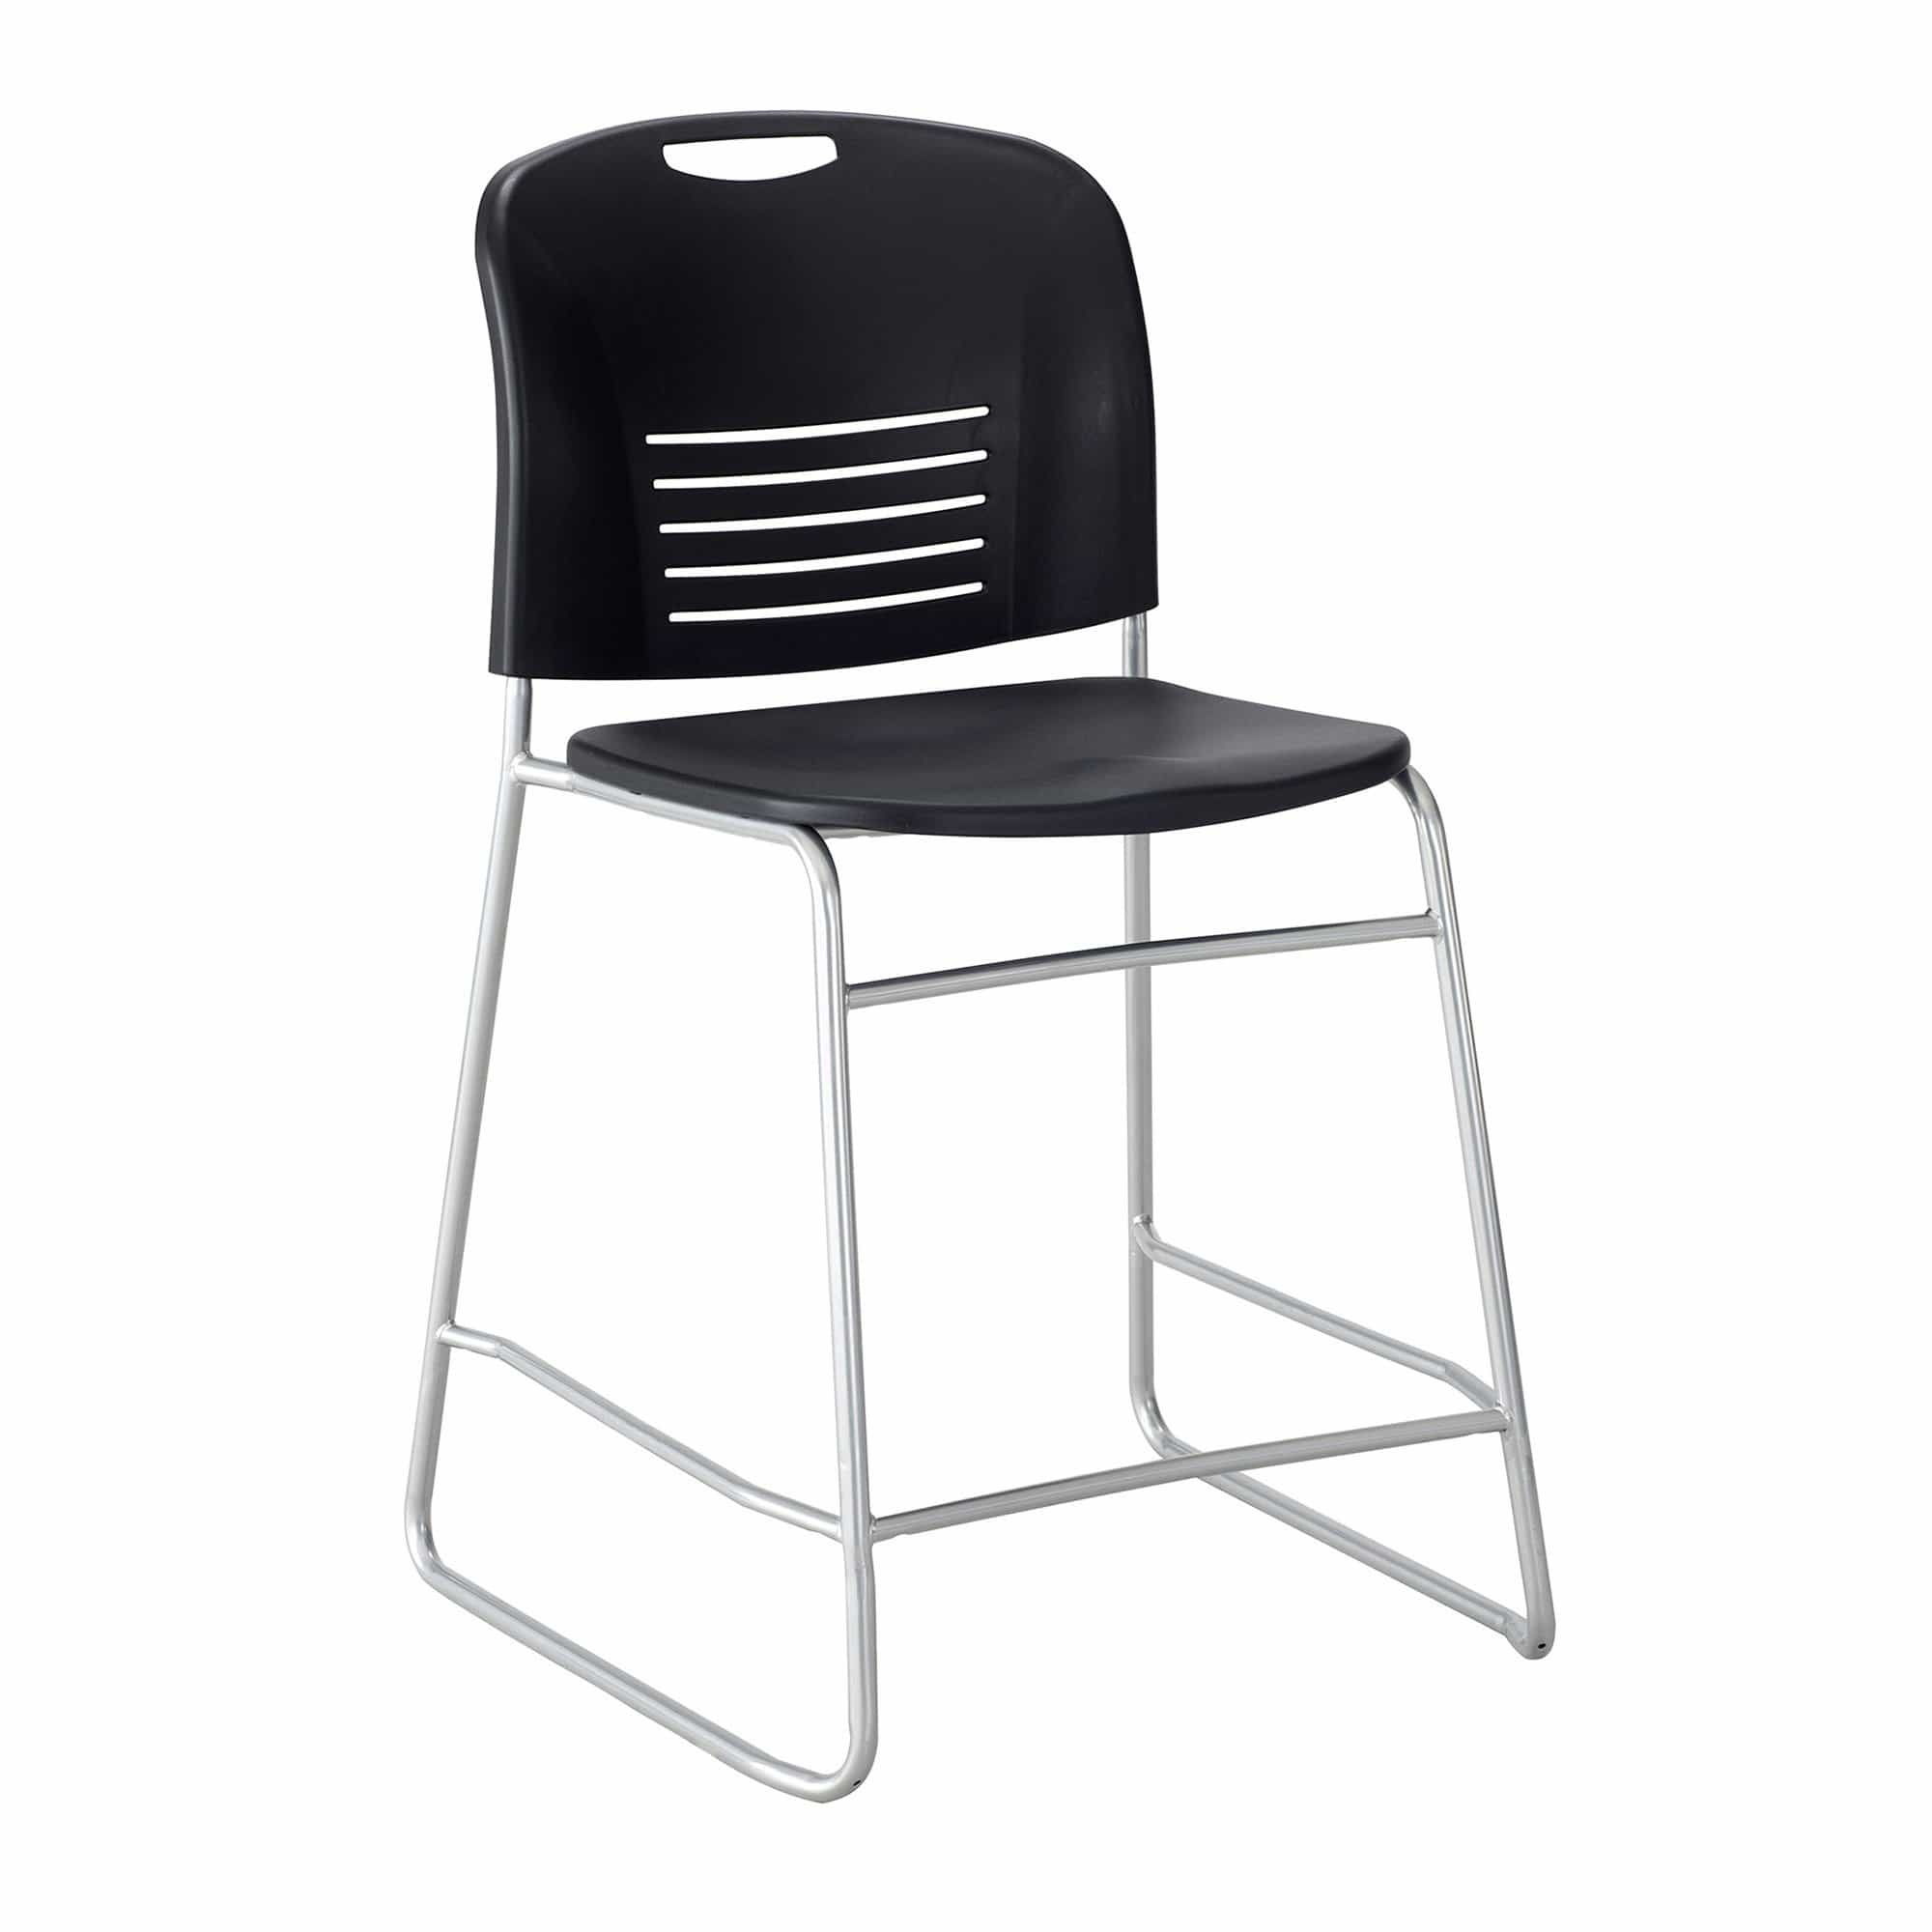 bedinhome - Safco Vy Plastic seat & back Steel powder coat frame counter-height Chair - Safco - Extended/Counter Hght Seating